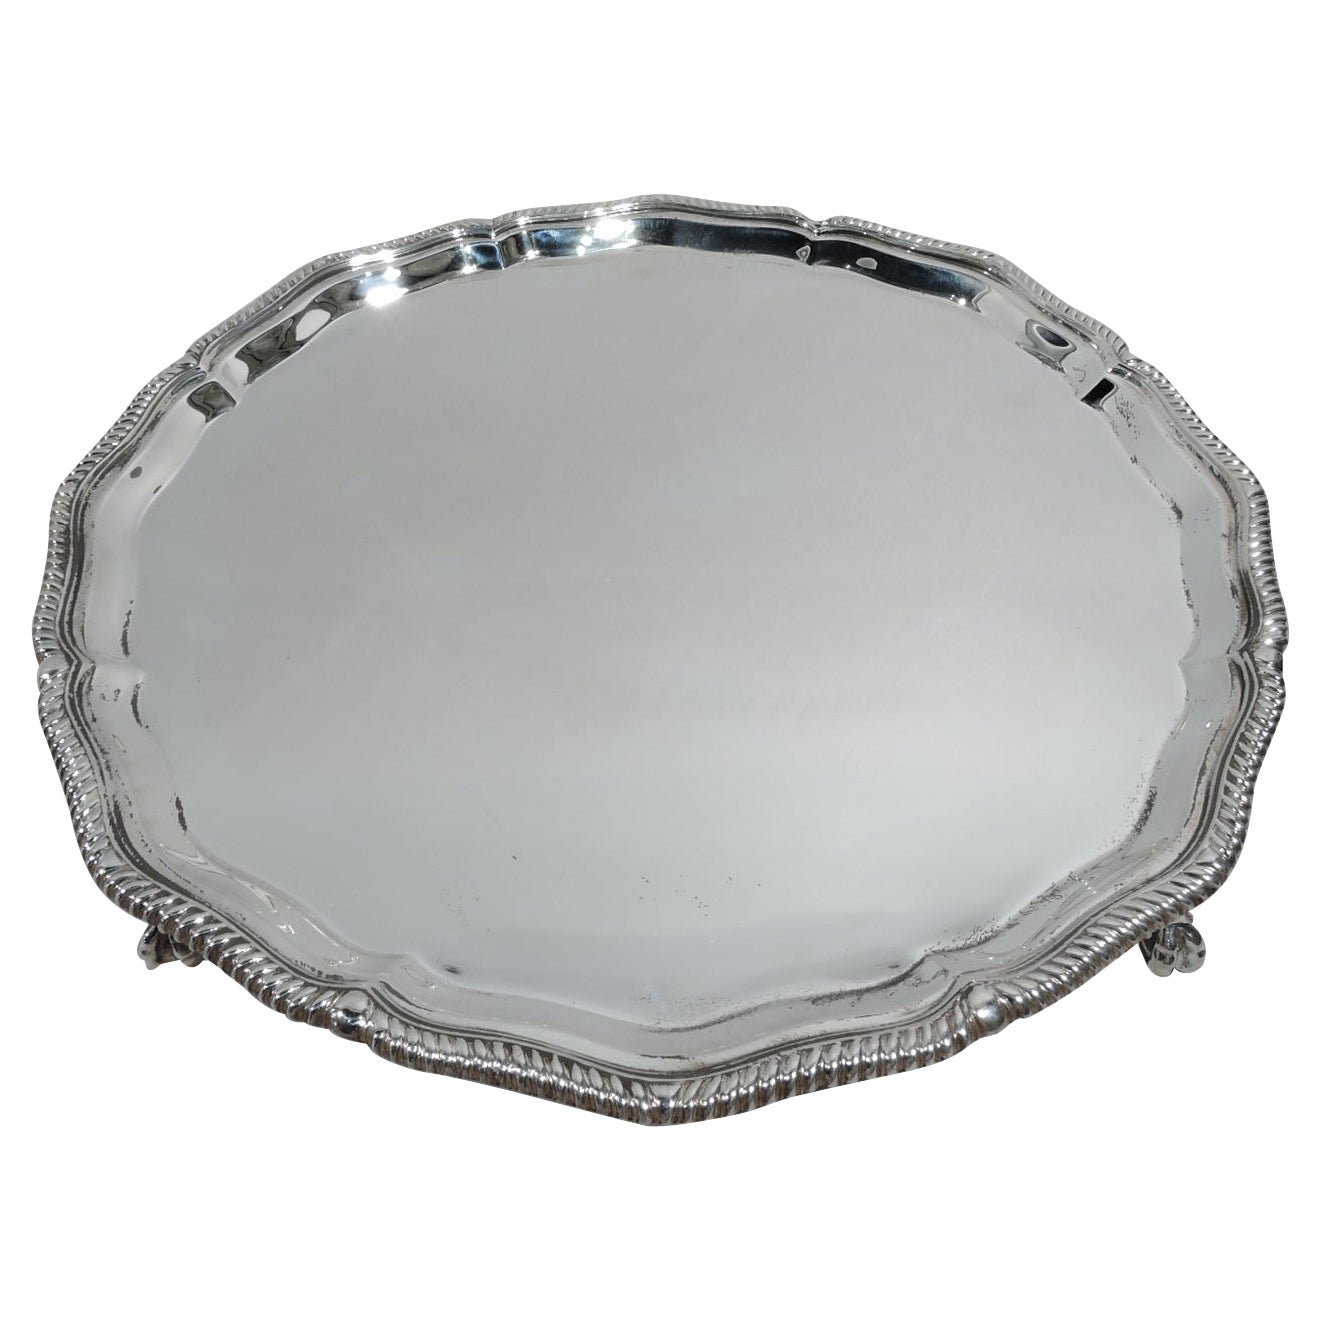 Antique English Neoclassical Sterling Silver Salver Tray